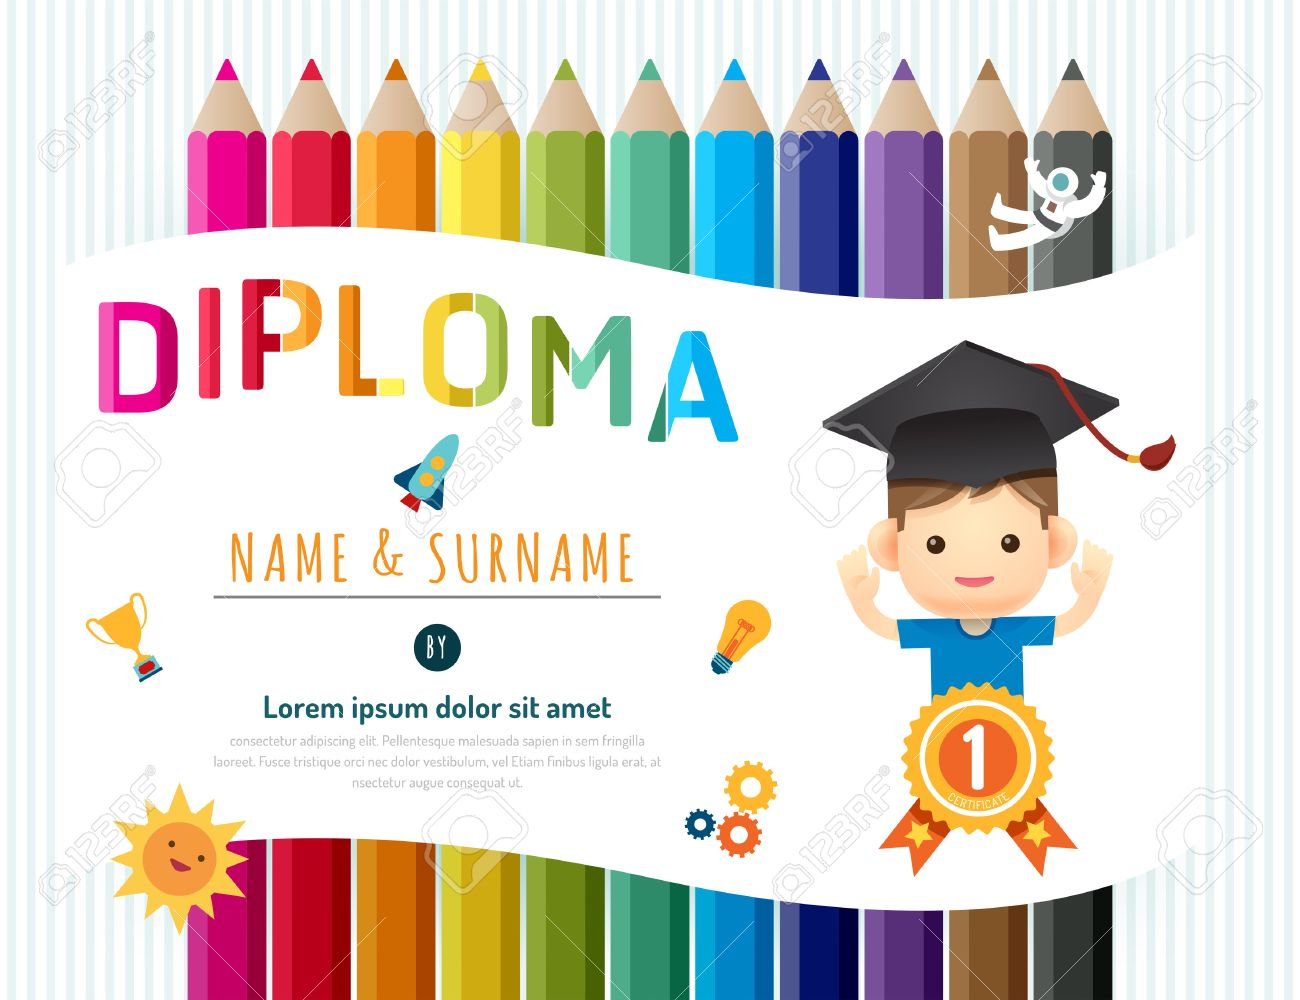 Certificate kids diploma kindergarten template layout pencil certificate kids diploma kindergarten template layout pencil background frame design vector education preschool concept yelopaper Image collections